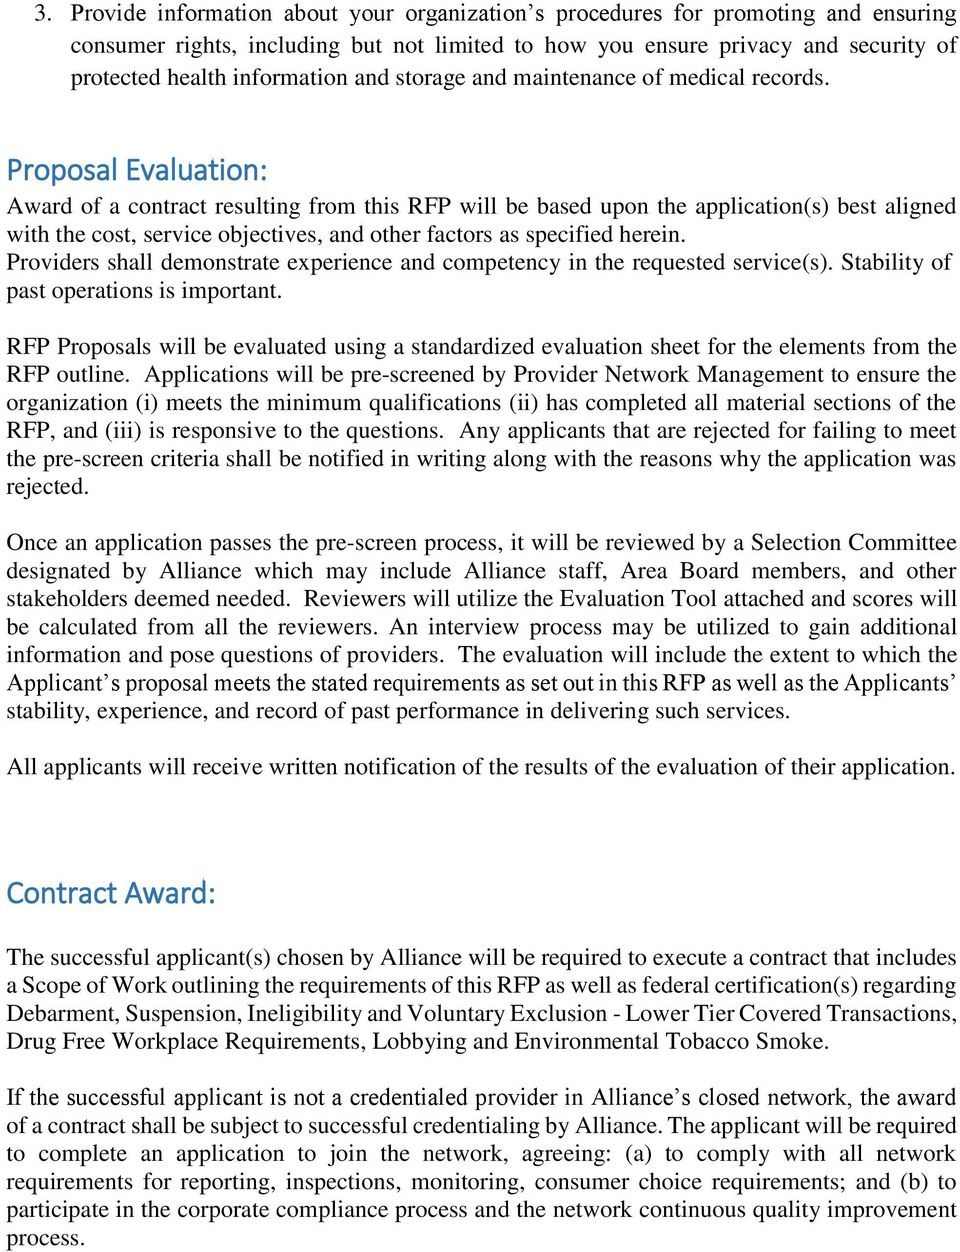 Proposal Evaluation: Award of a contract resulting from this RFP will be based upon the application(s) best aligned with the cost, service objectives, and other factors as specified herein.